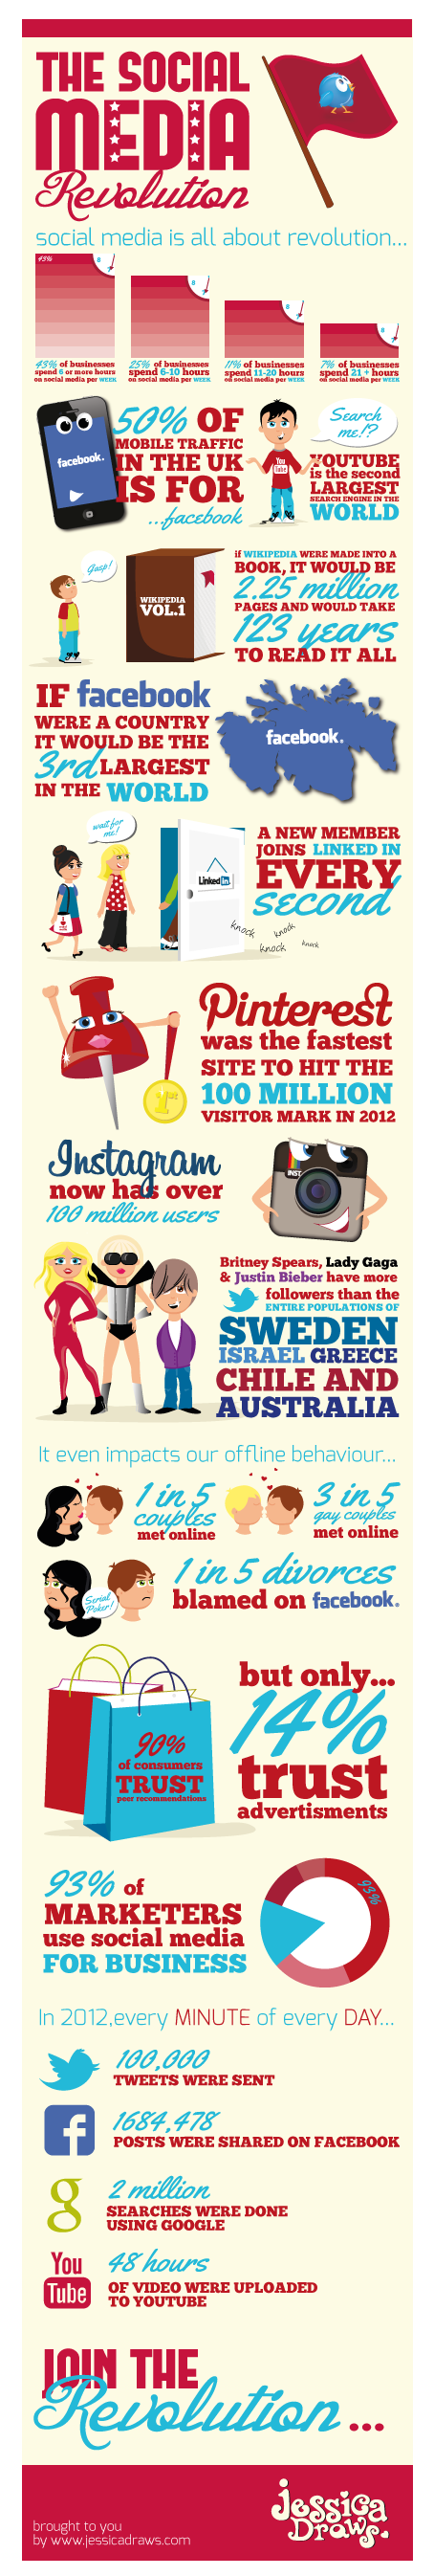 Social Media Revolution: facts and figures